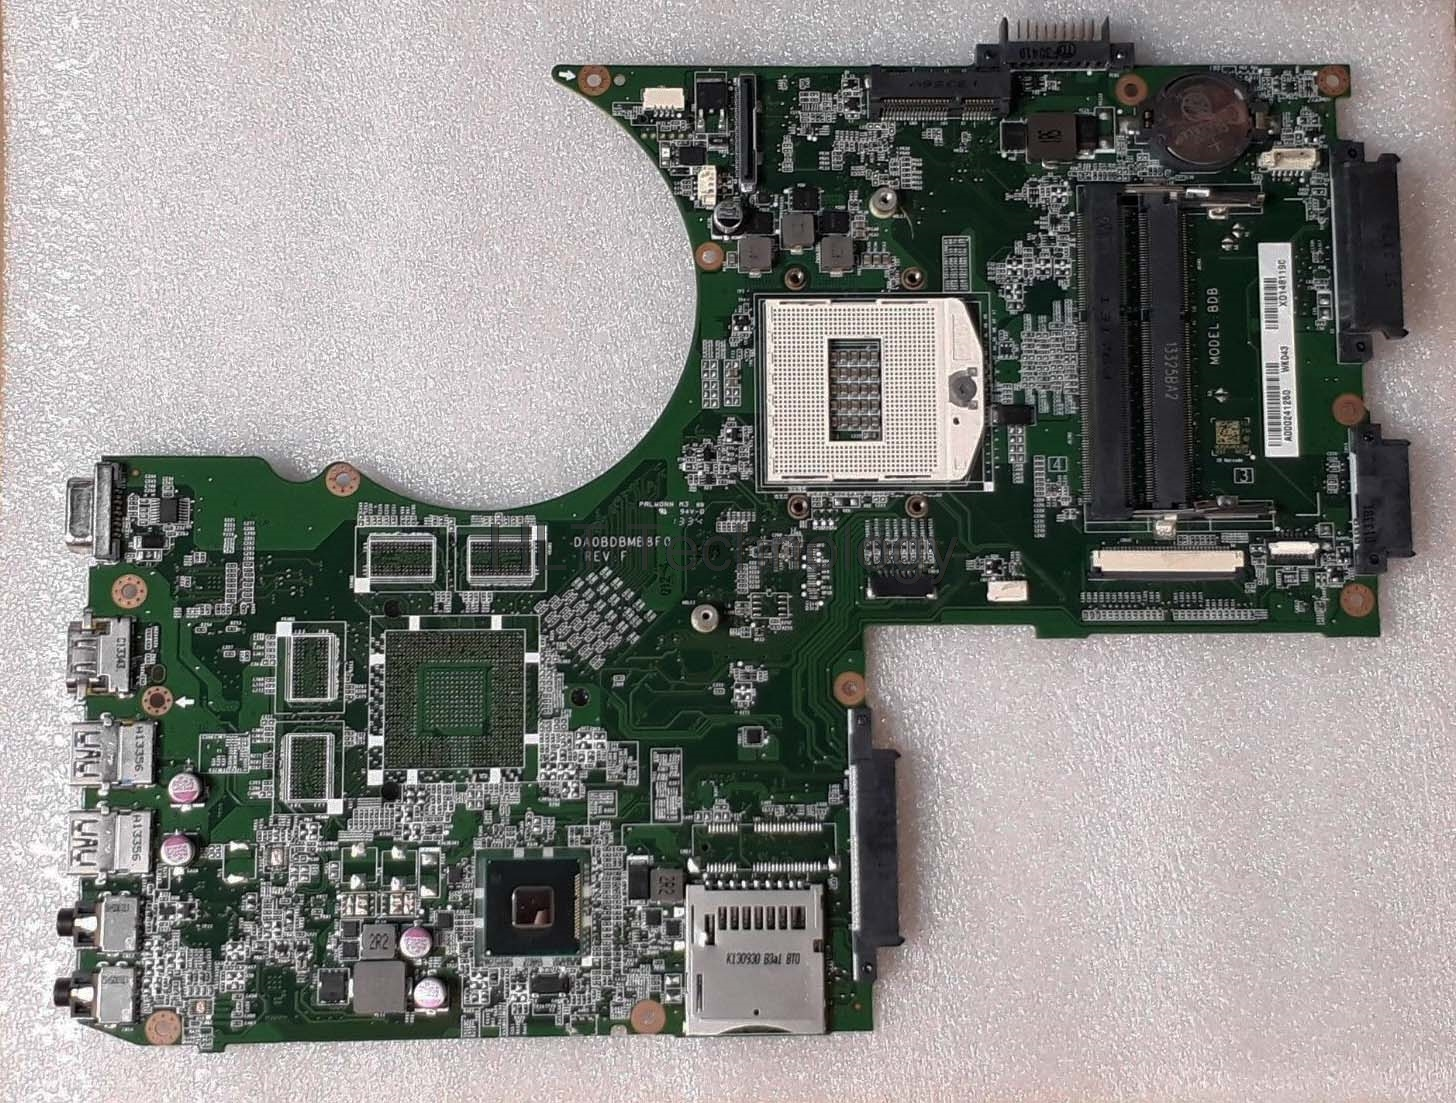 HOLYTIME For toshiba satellite P70 P75 laptop motherboard DA0BDBMB8F0 A000241250 HM86 DDR3 HD4600 PAG947HOLYTIME For toshiba satellite P70 P75 laptop motherboard DA0BDBMB8F0 A000241250 HM86 DDR3 HD4600 PAG947